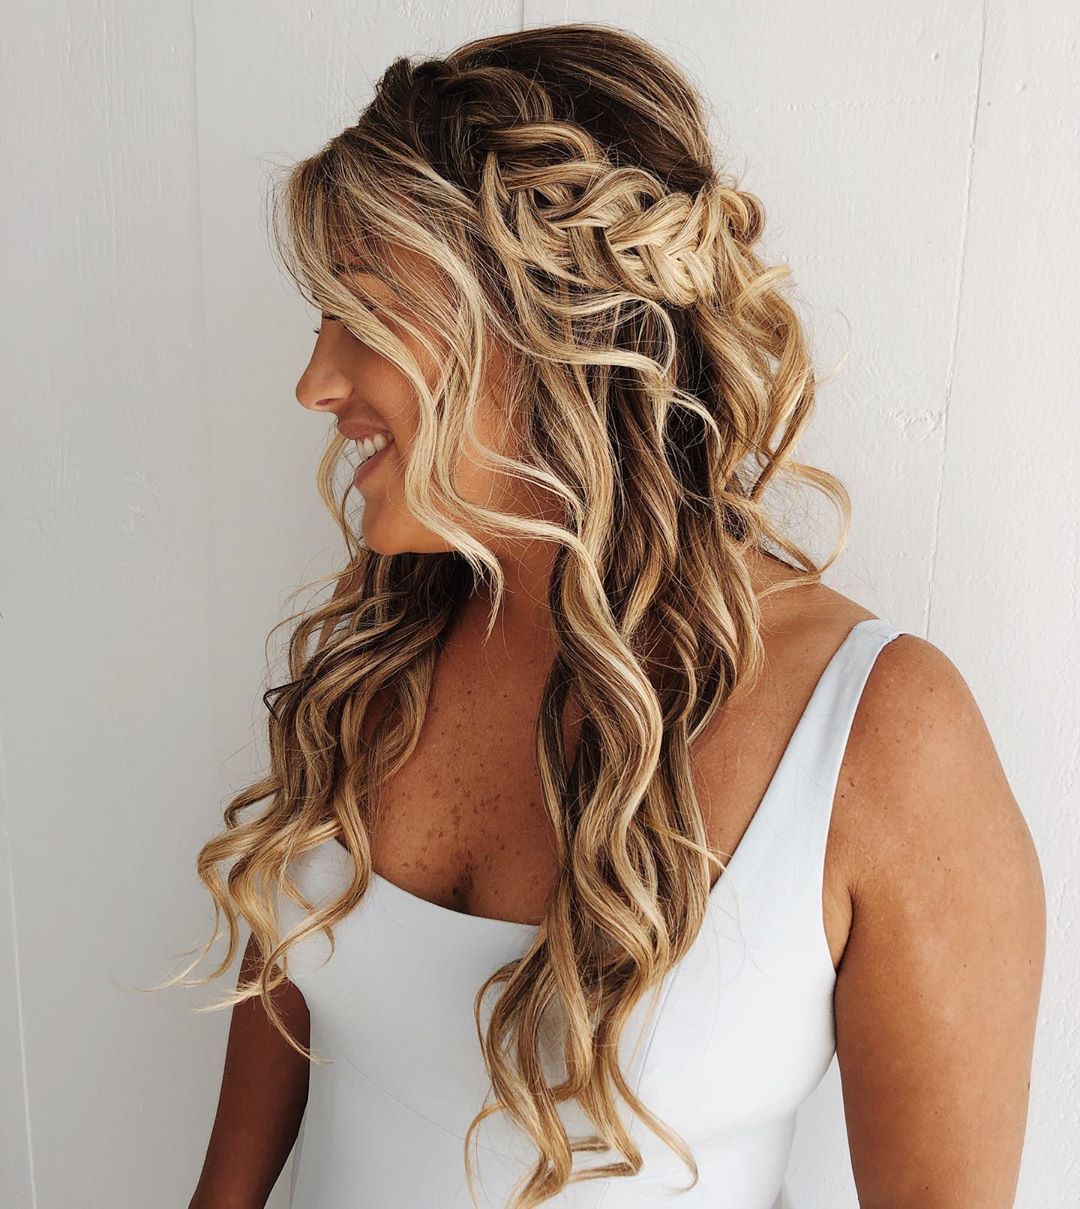 Wavy Half Up Half Down with a Braid